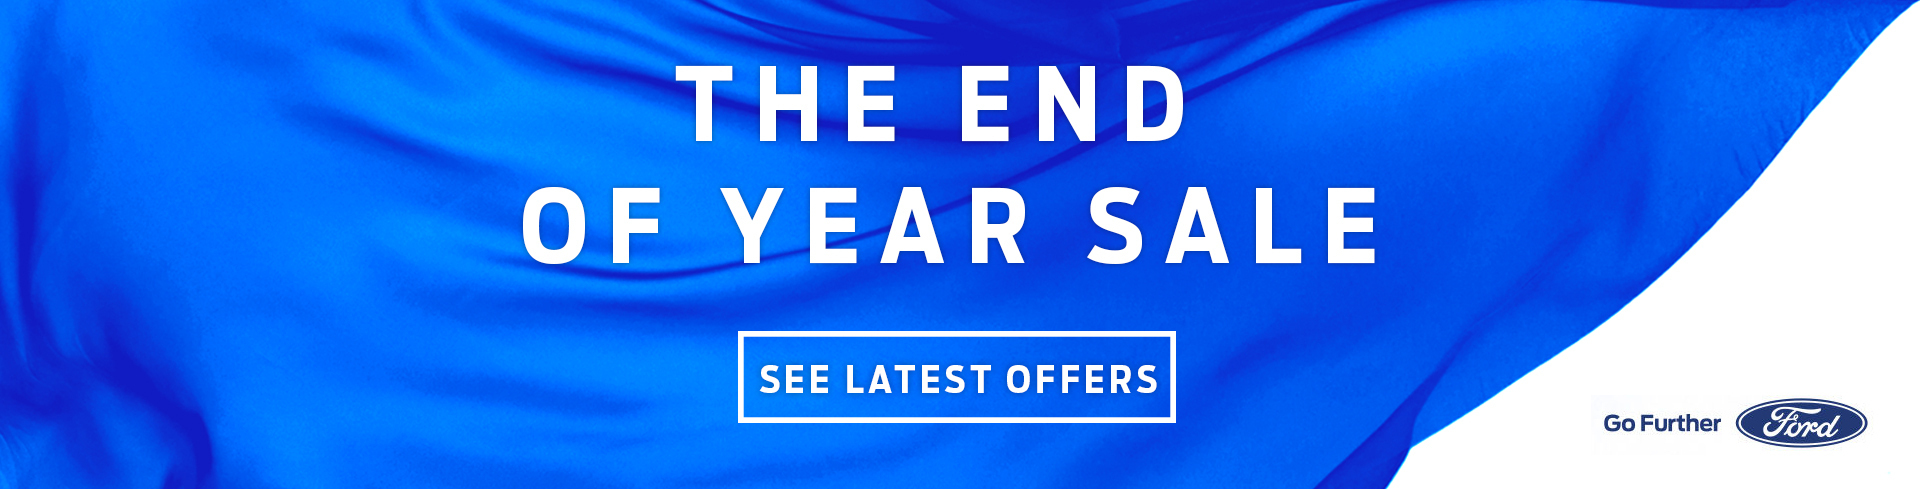 Ford - End of Year Sale